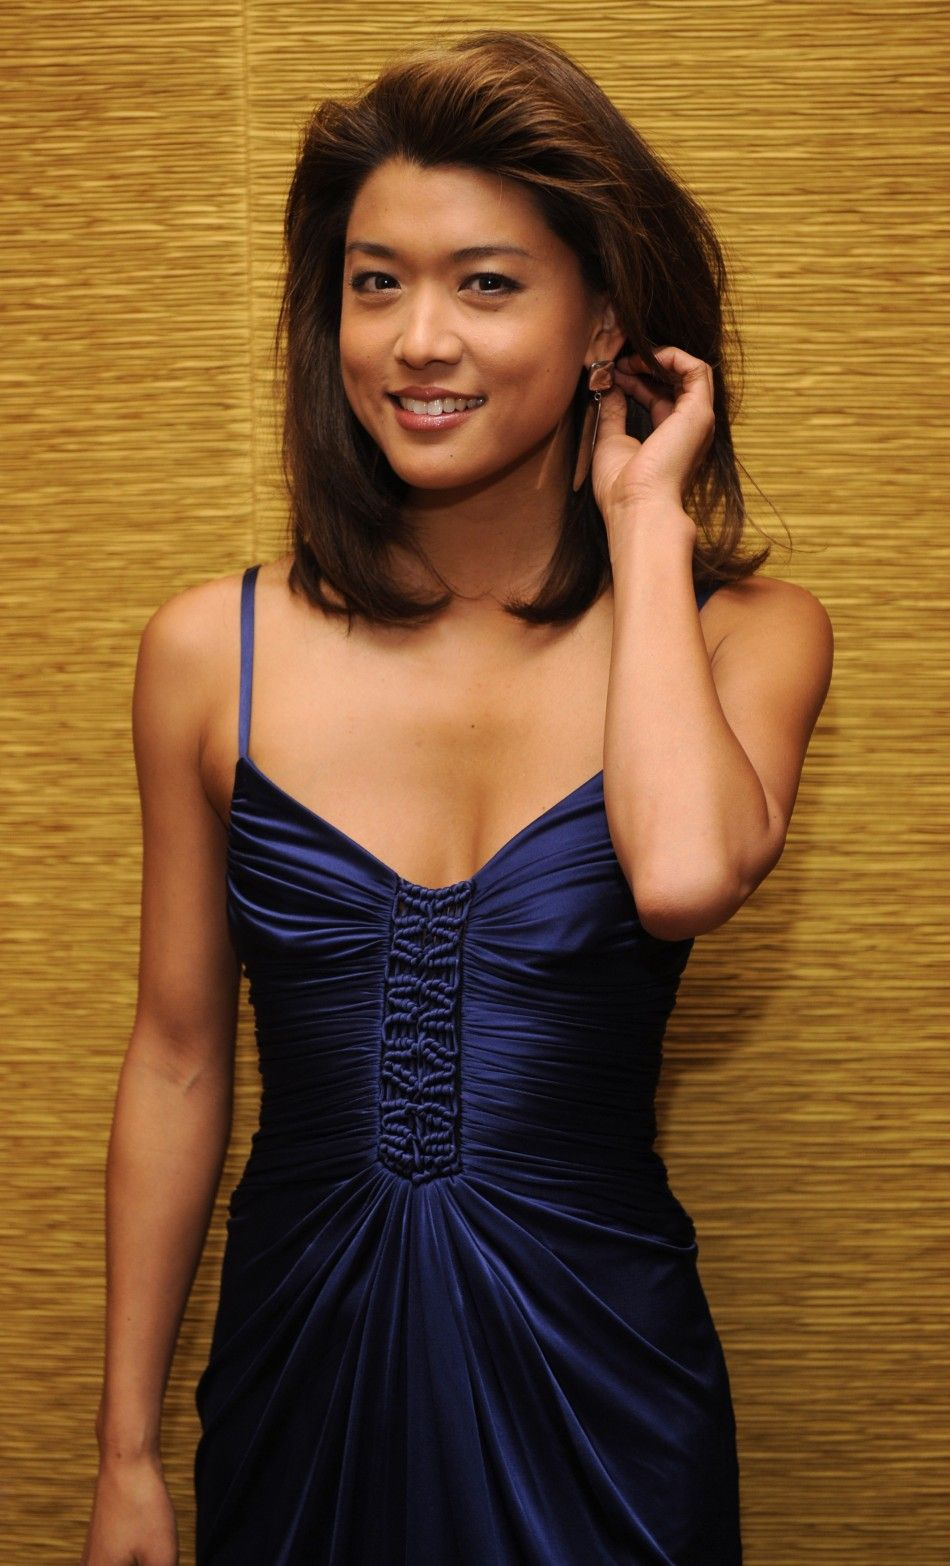 Grace Park (Hawaii Five O) She's gorgeoussss. Love her character. Kono can  kick serious ass!